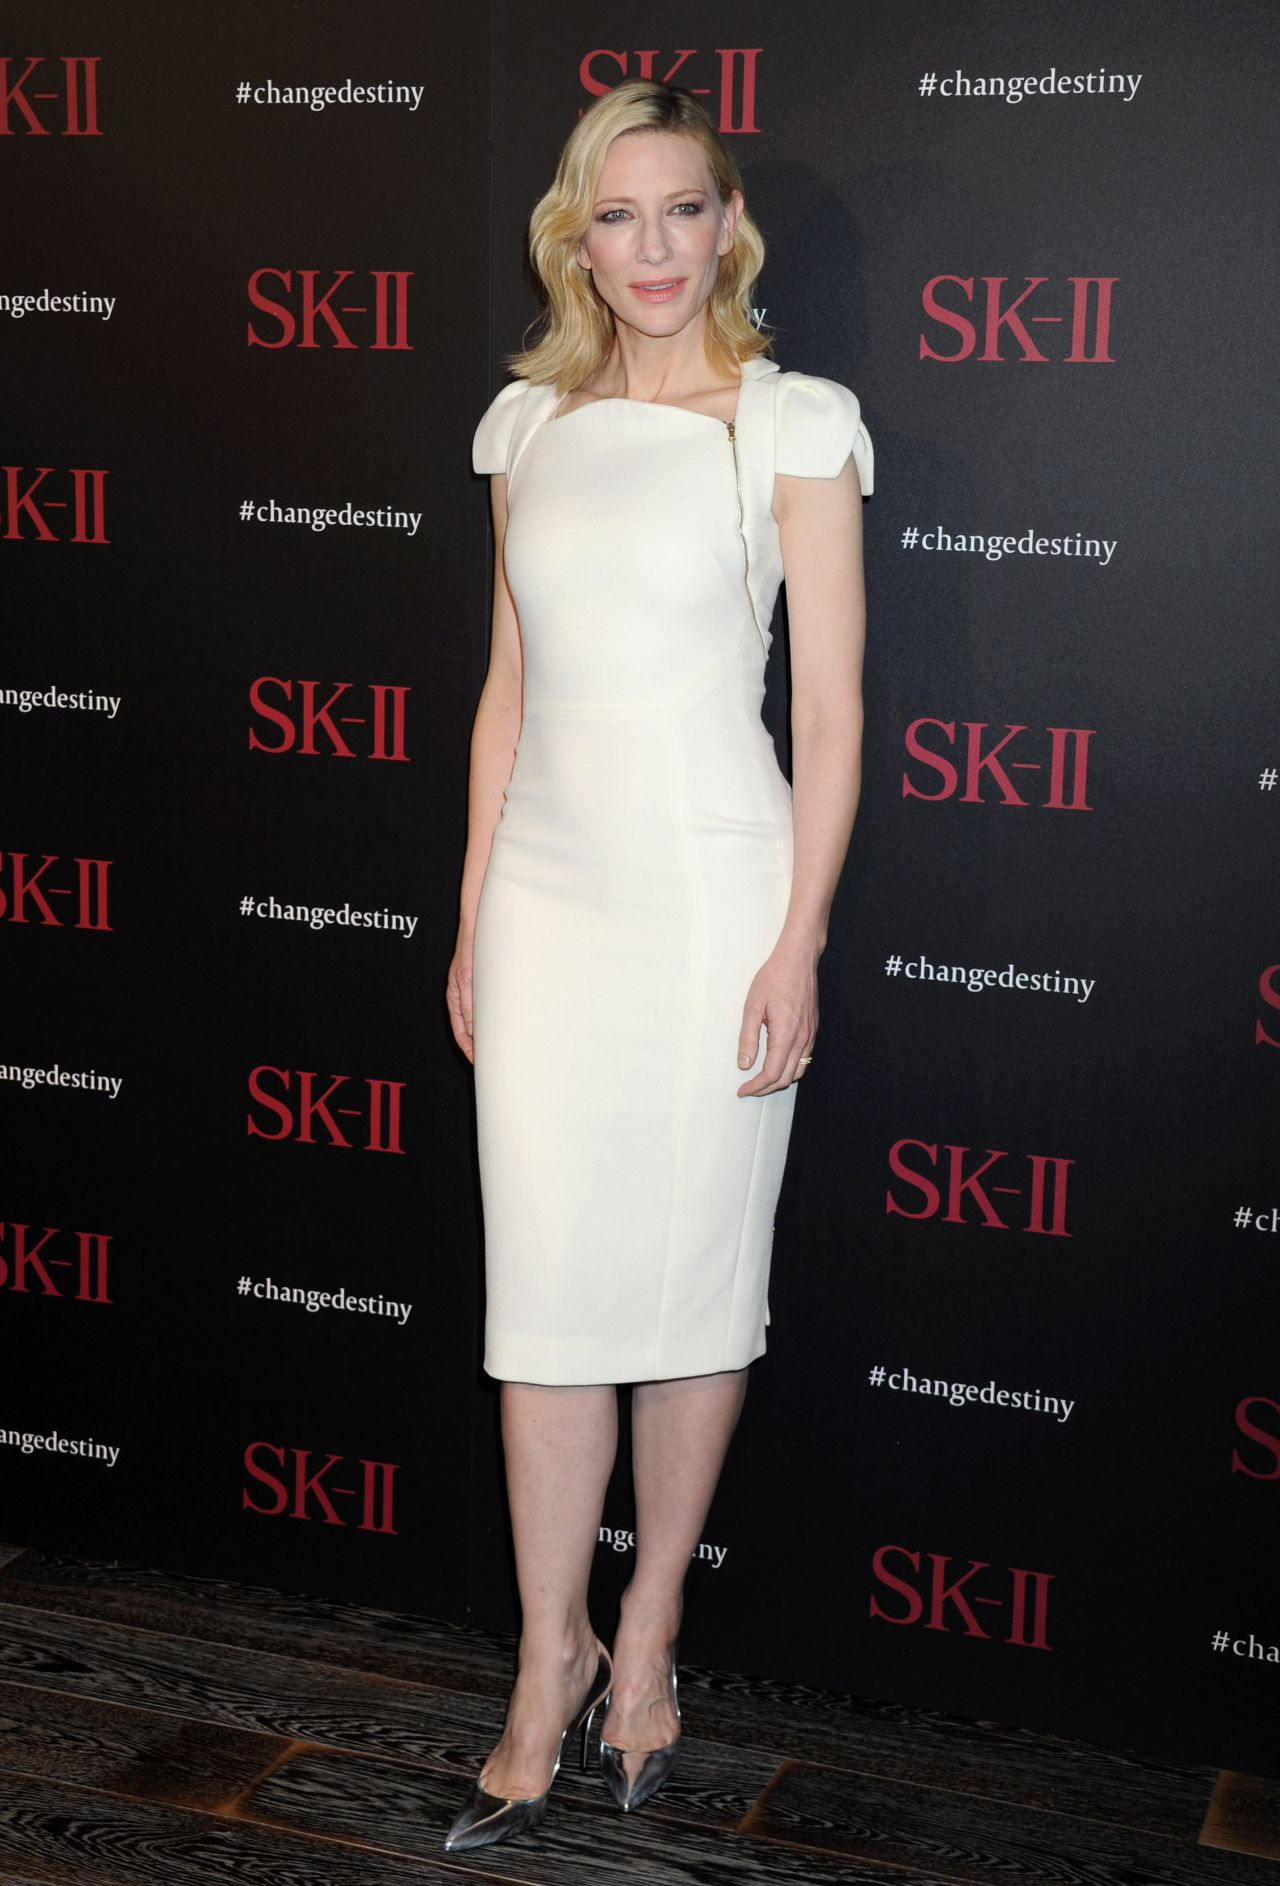 cate-blanchett-sk-ii-changedestiny-forum-in-los-angeles-2-26-2016-7